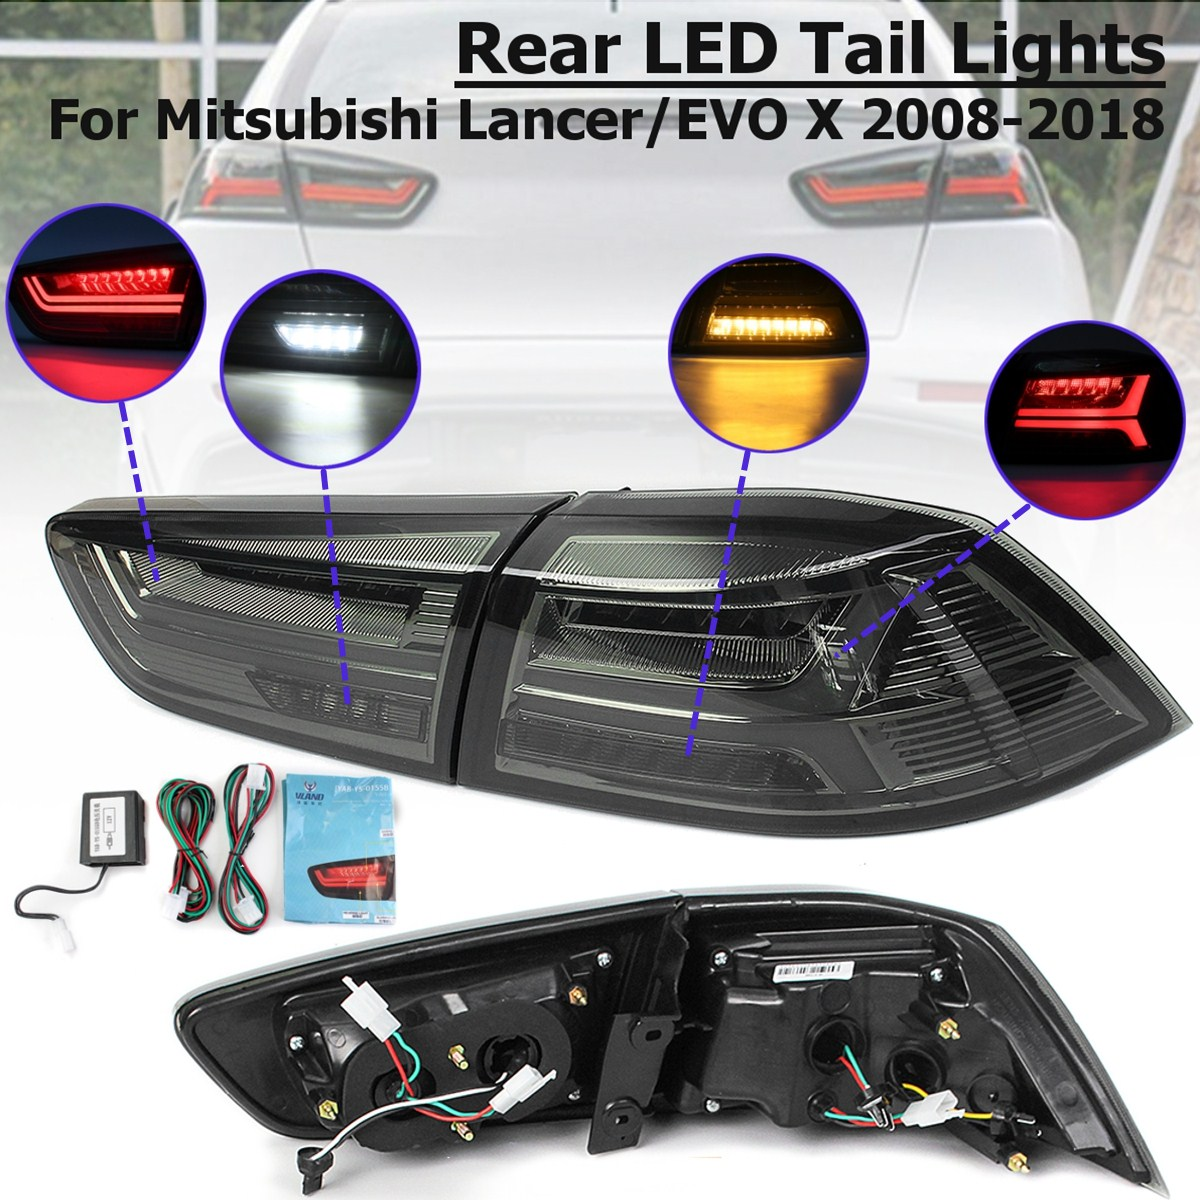 1 Pair for Mitsubishi Lancer/EVOx2008-2017 Rear LED Tail Brake Light Lamps Tail Light Signal LED DRL Stop Rear Lamp Accessories free shipping led tail lamps assy bm style light bar rear lamps tail lights fit for hyundai elantra 2012 2015